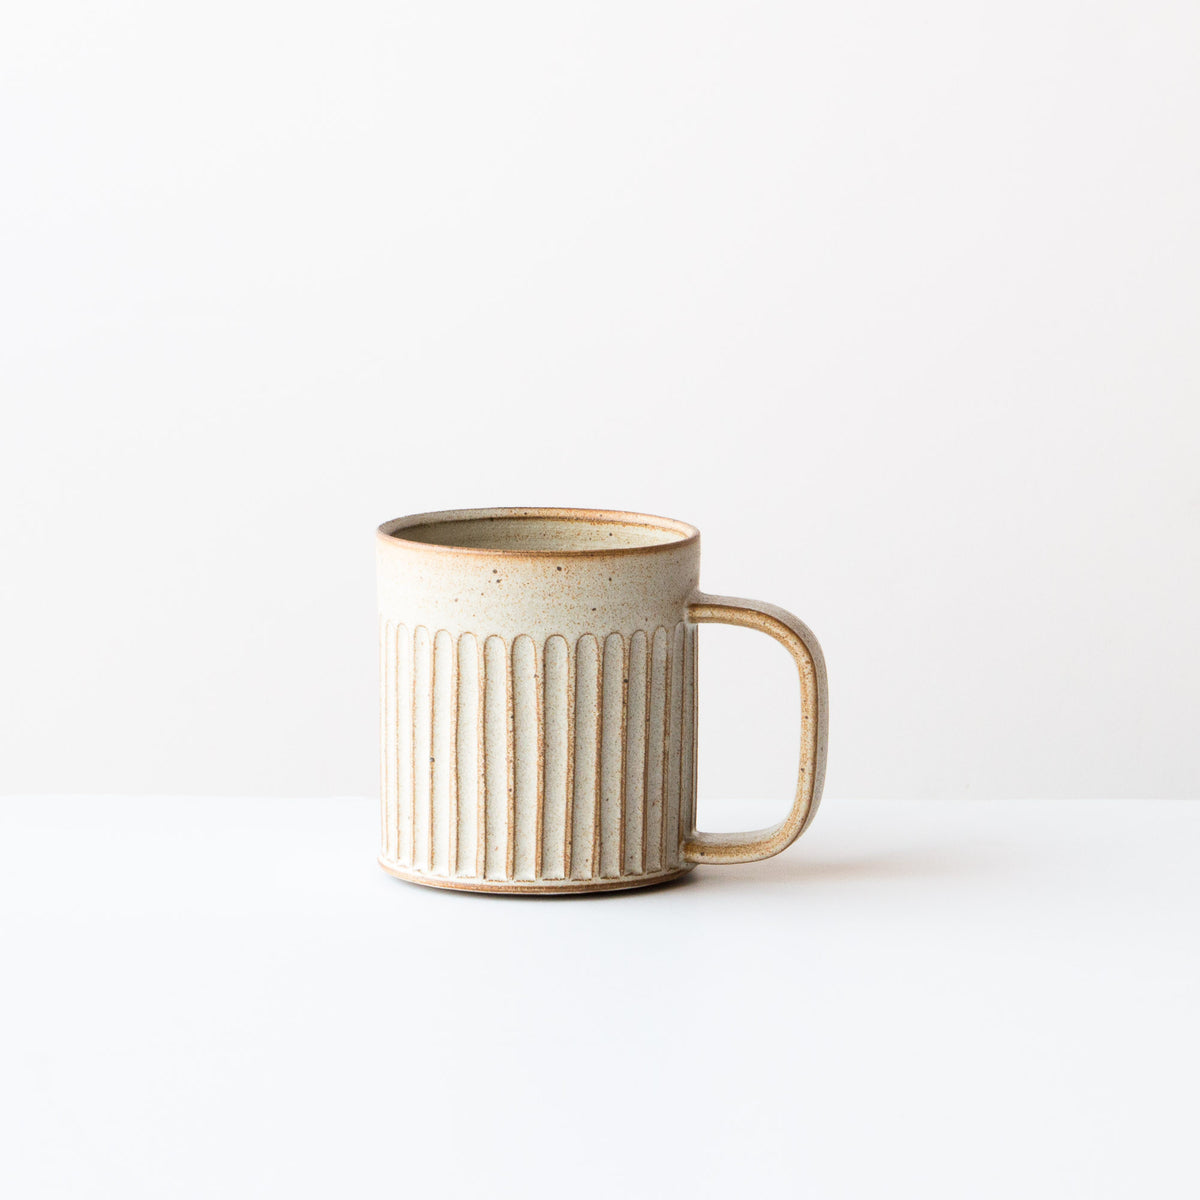 Greige Colour - Hand Thrown Ceramic Coffee Mug - Handmade in Quebec by Christian Roy - Chic & Basta